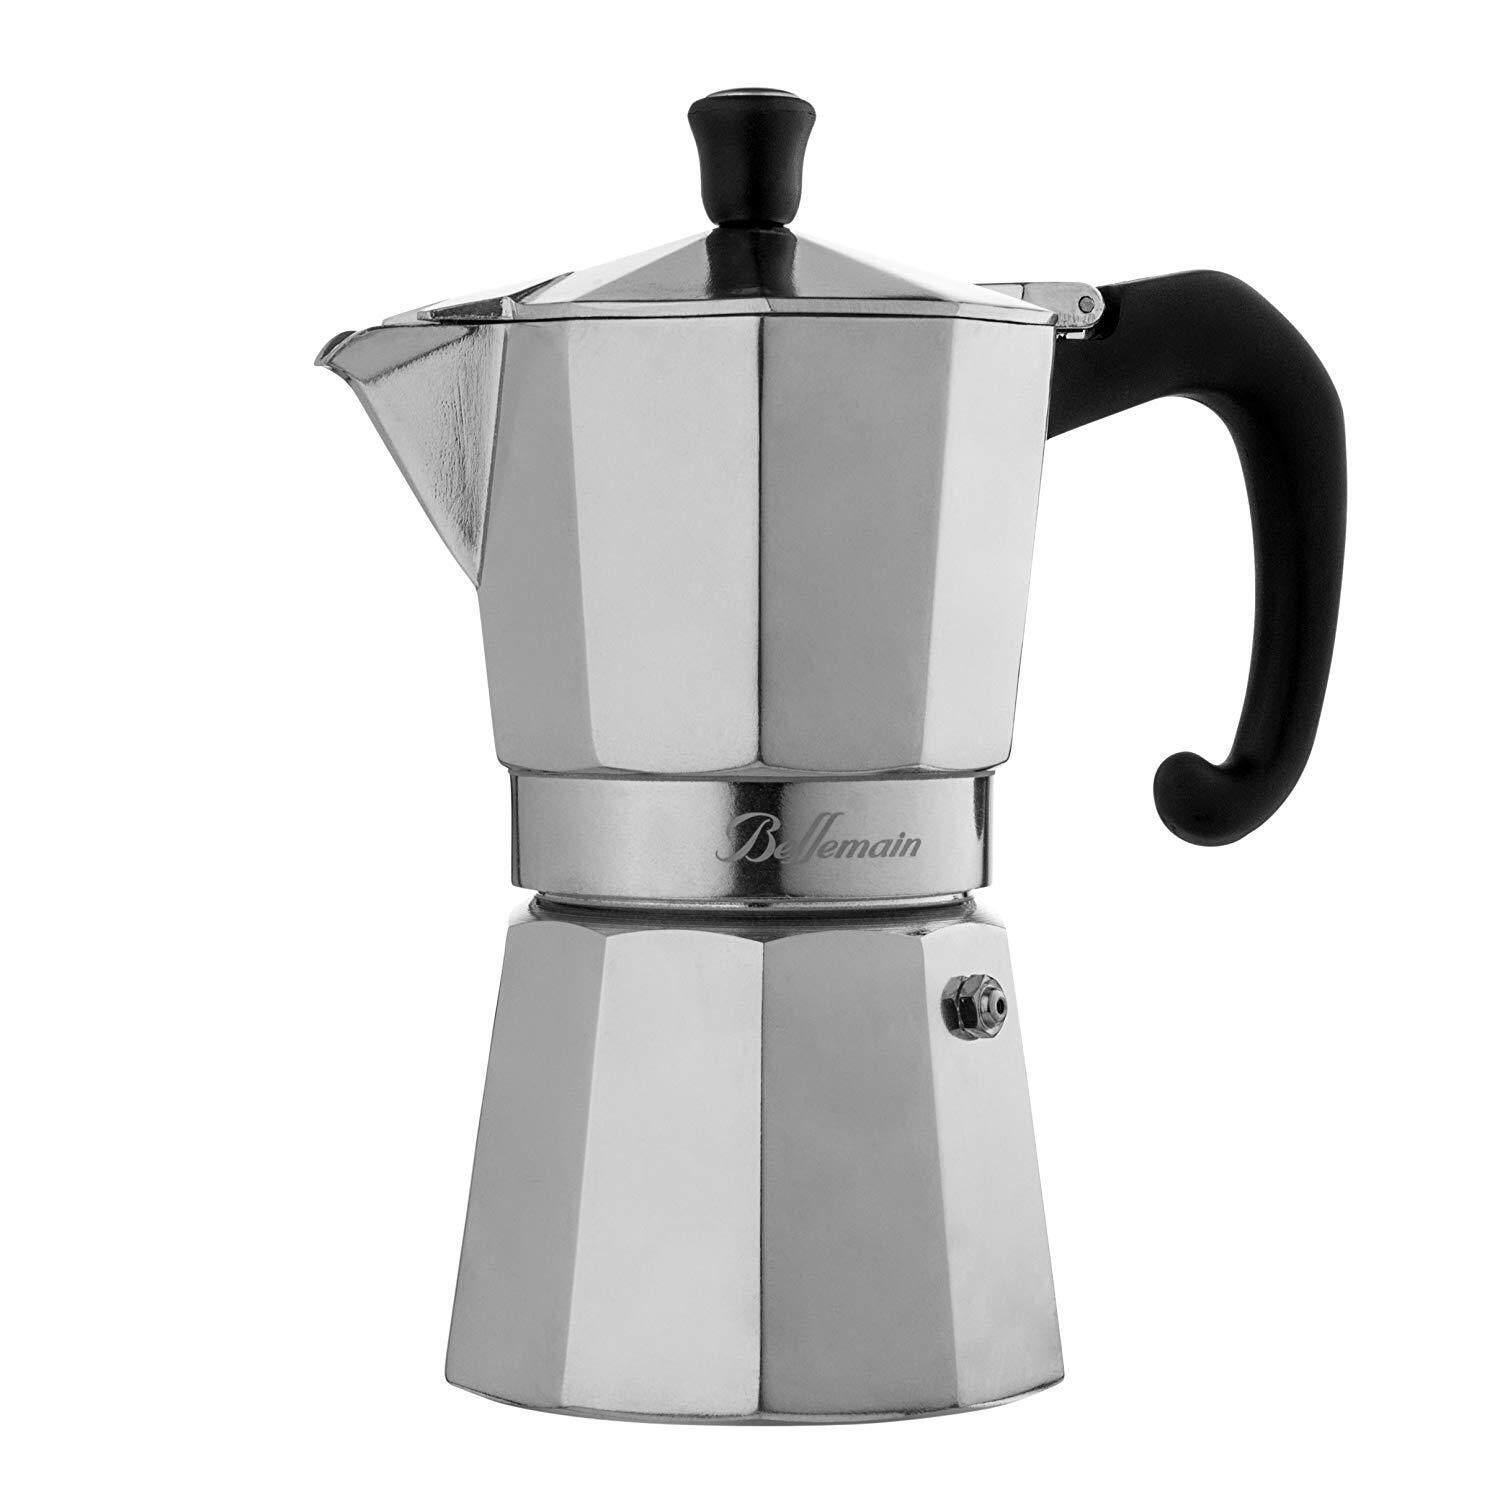 Bellemain 6-Cup Stovetop Espresso Maker Moka Pot